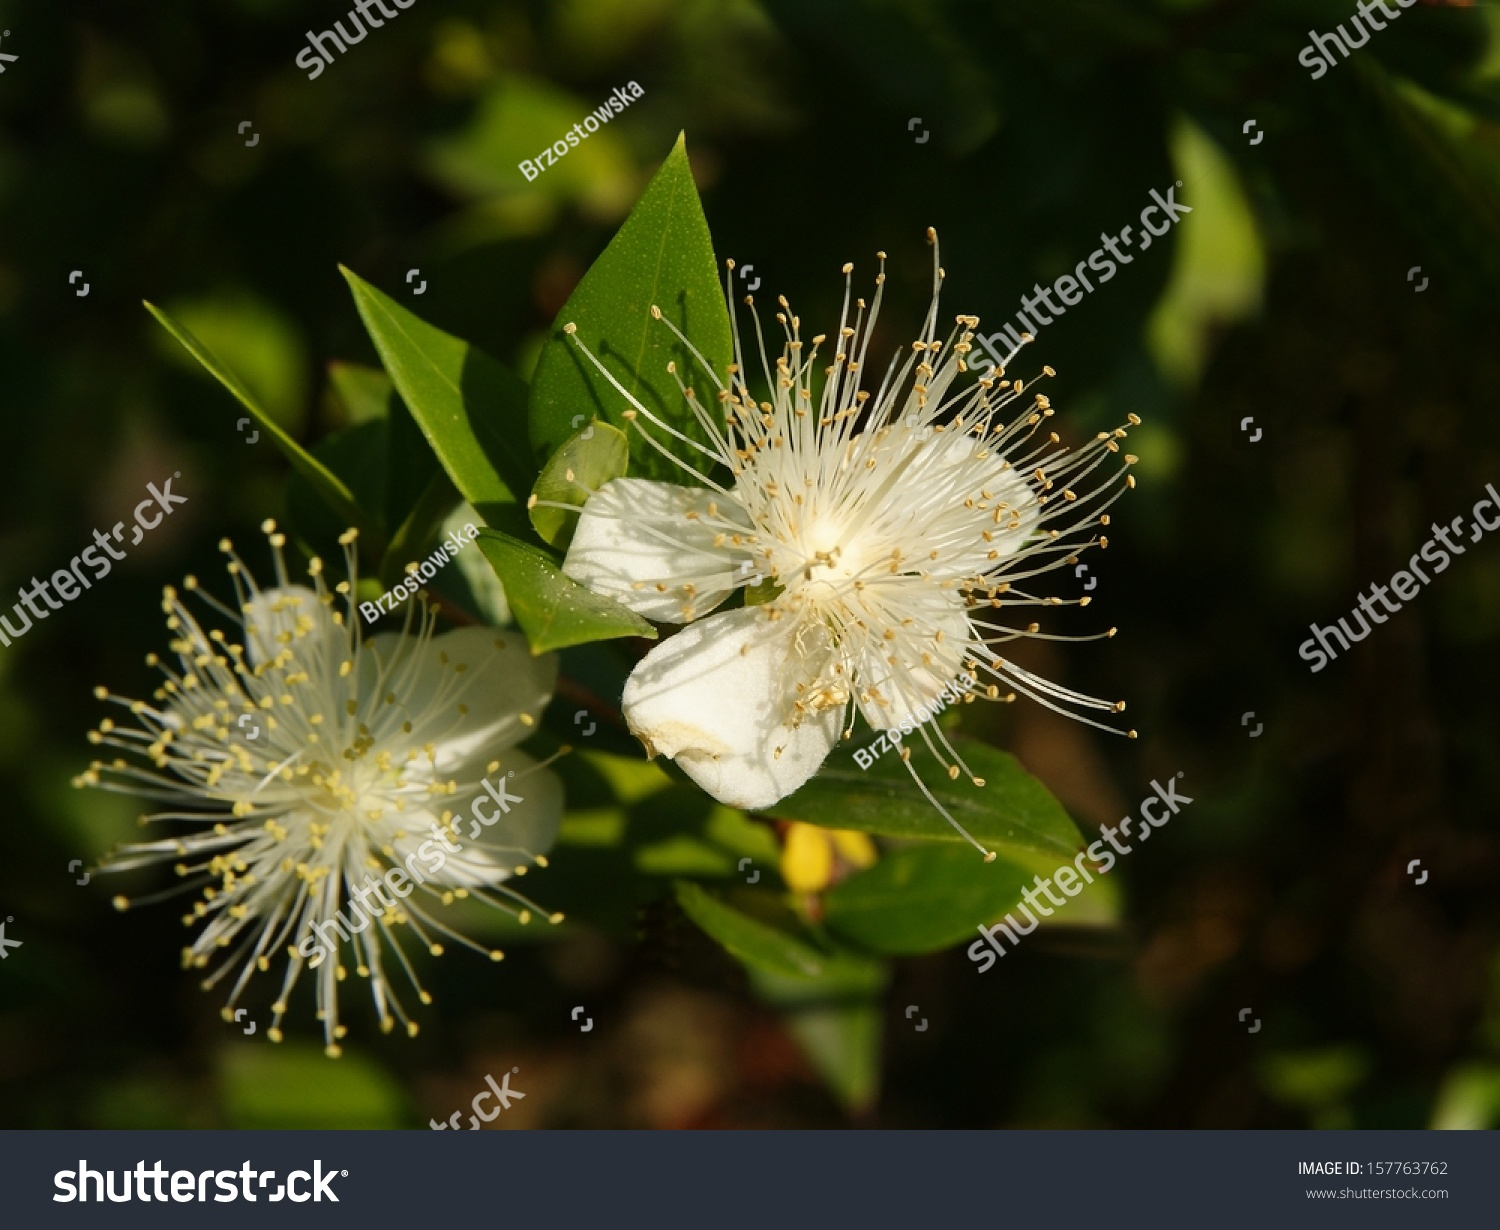 Pretty White Flower Buxus Balearica Stock Photo Edit Now 157763762